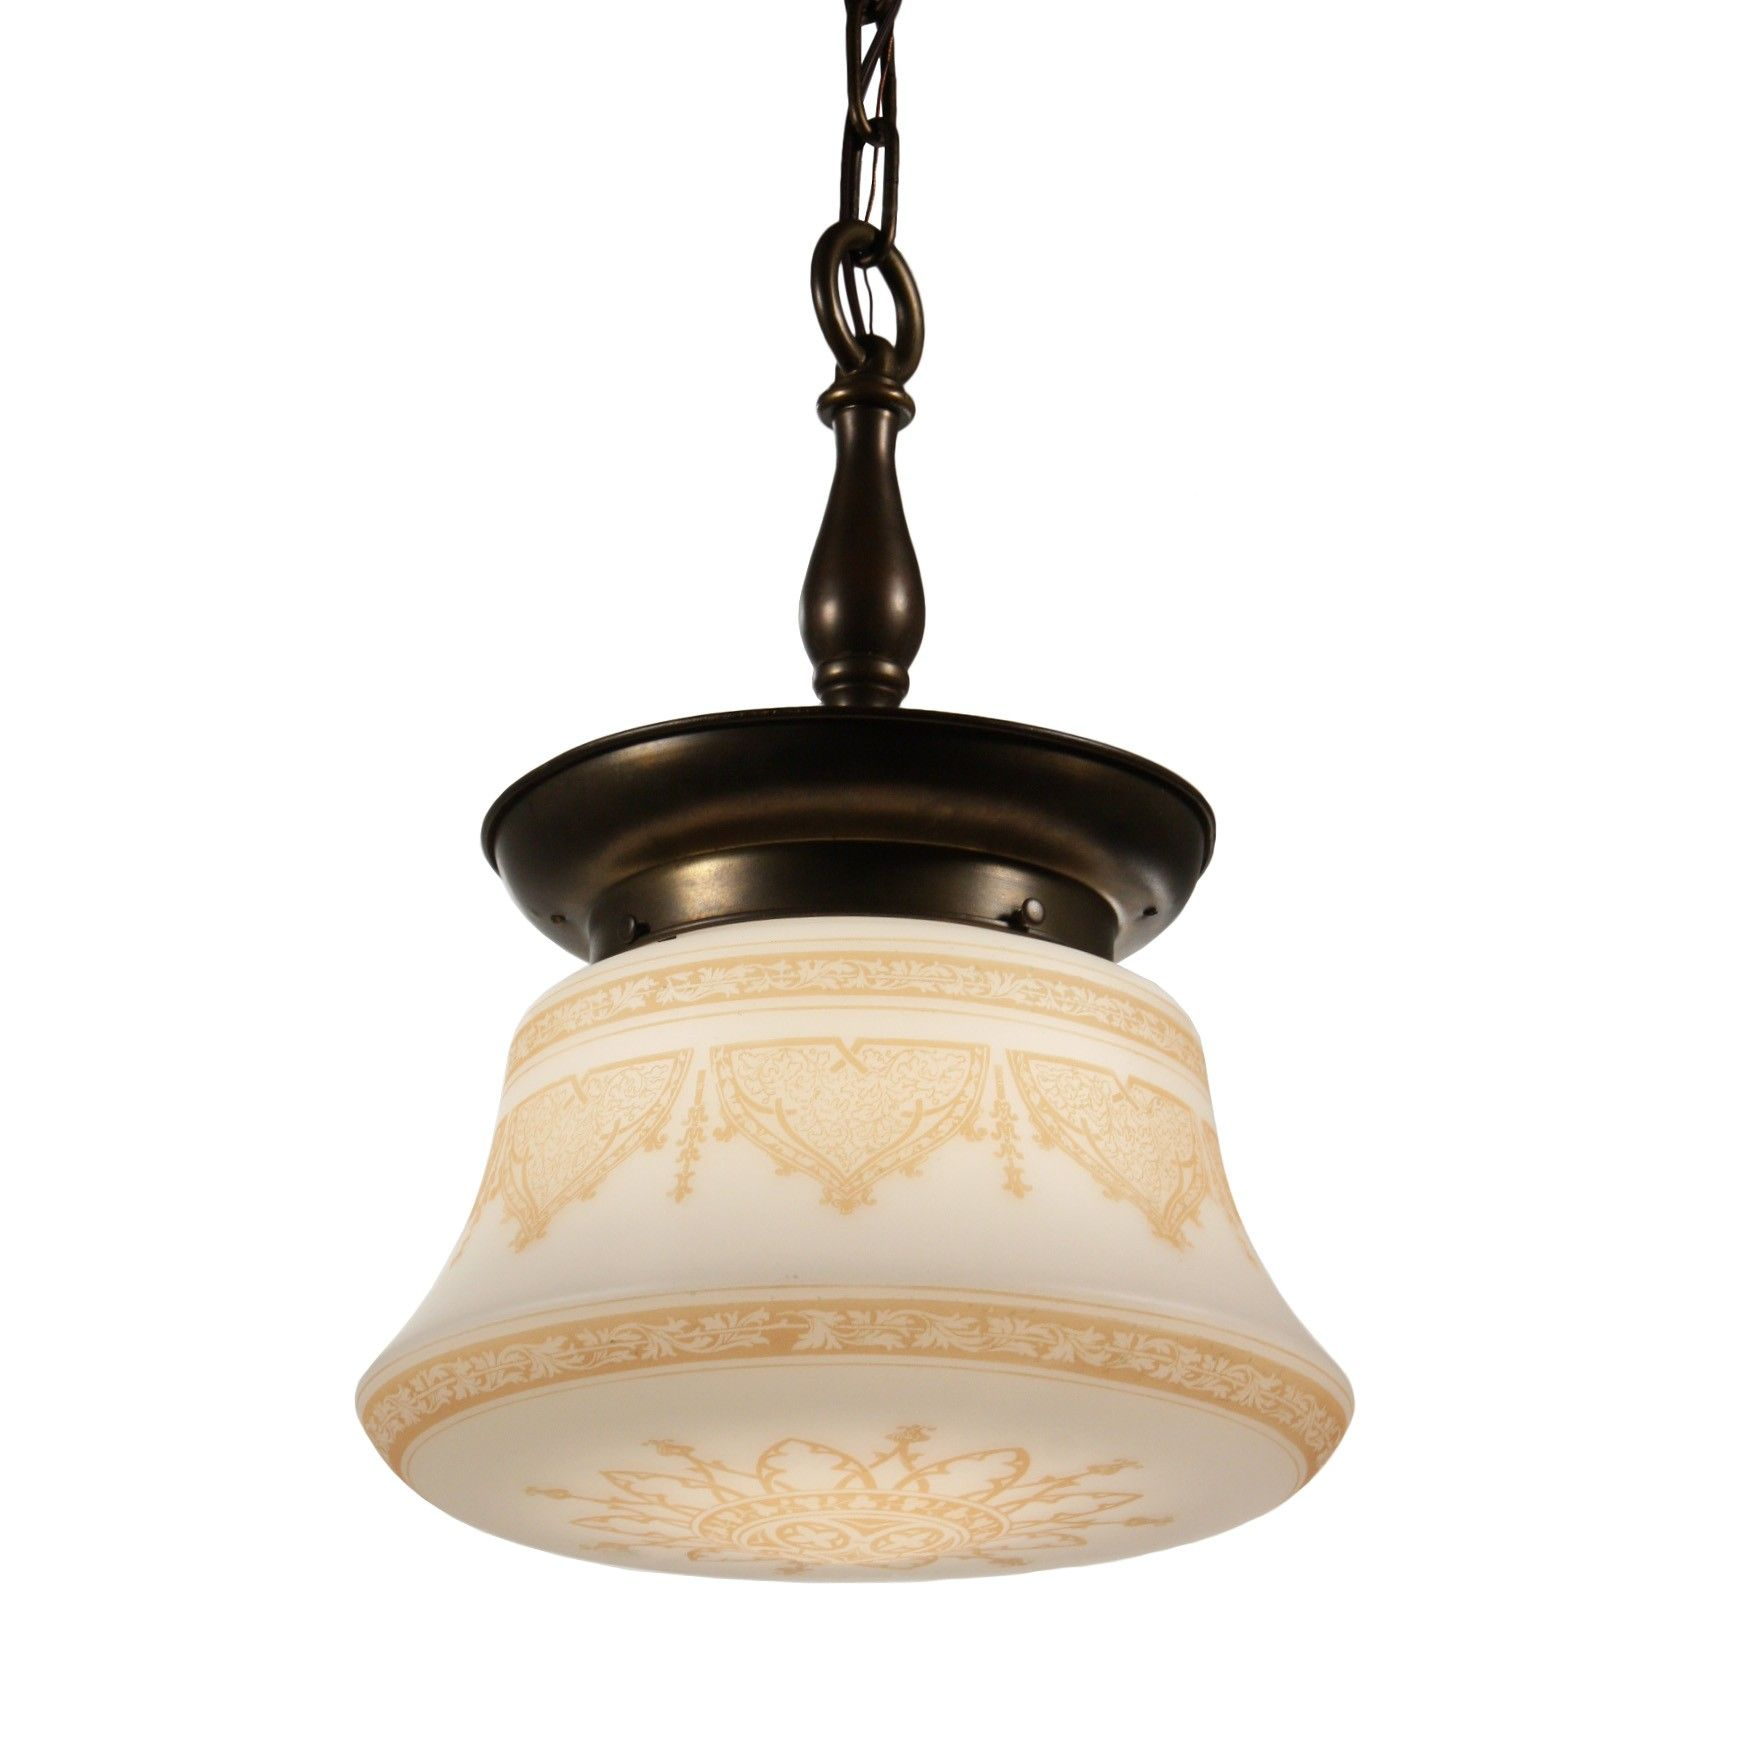 neoclassical lighting. Antique Neoclassical Pendant Light With Original Shade - Preservation Station\u2026 Lighting L